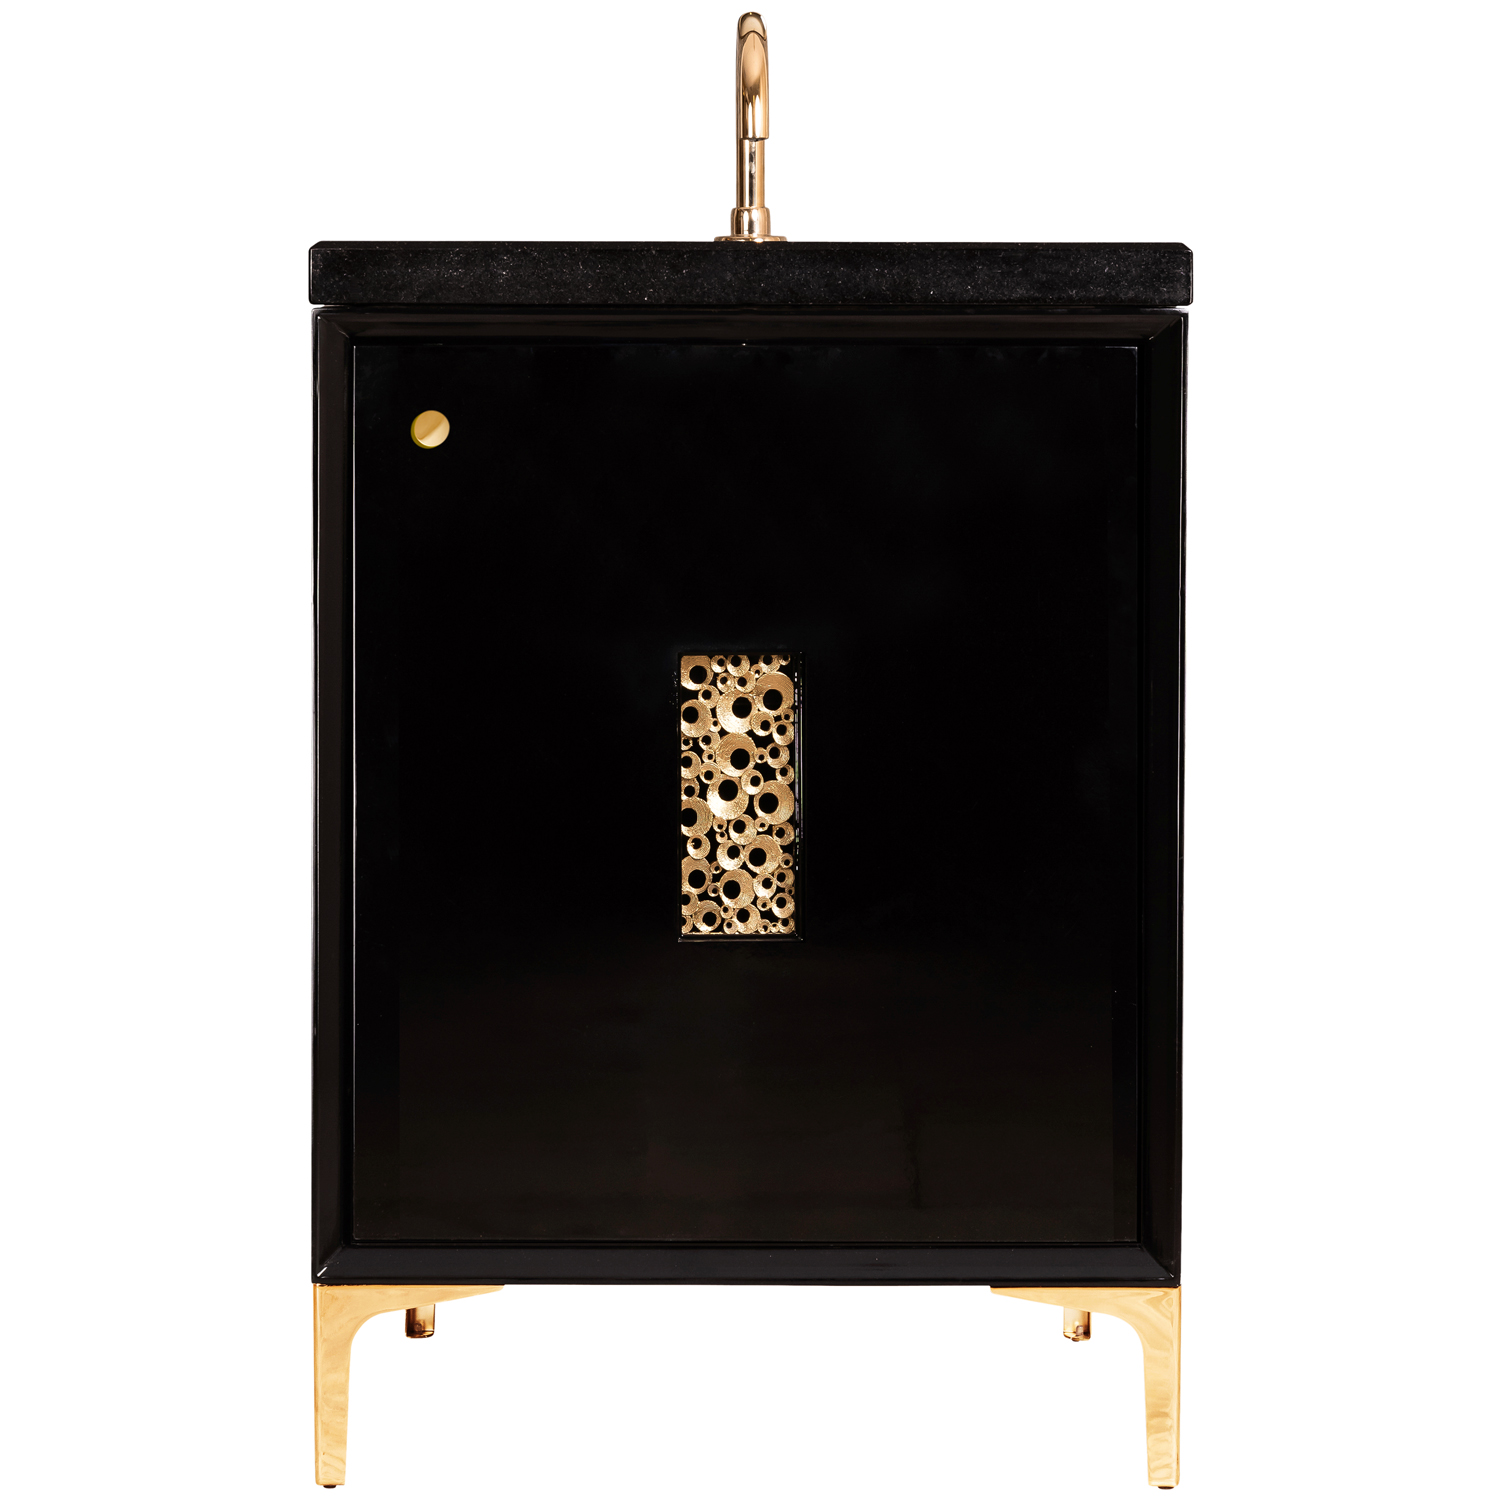 """VAN24B-0010 24"""" Black Frame With Coral - Shown with PB (Polished Brass)"""